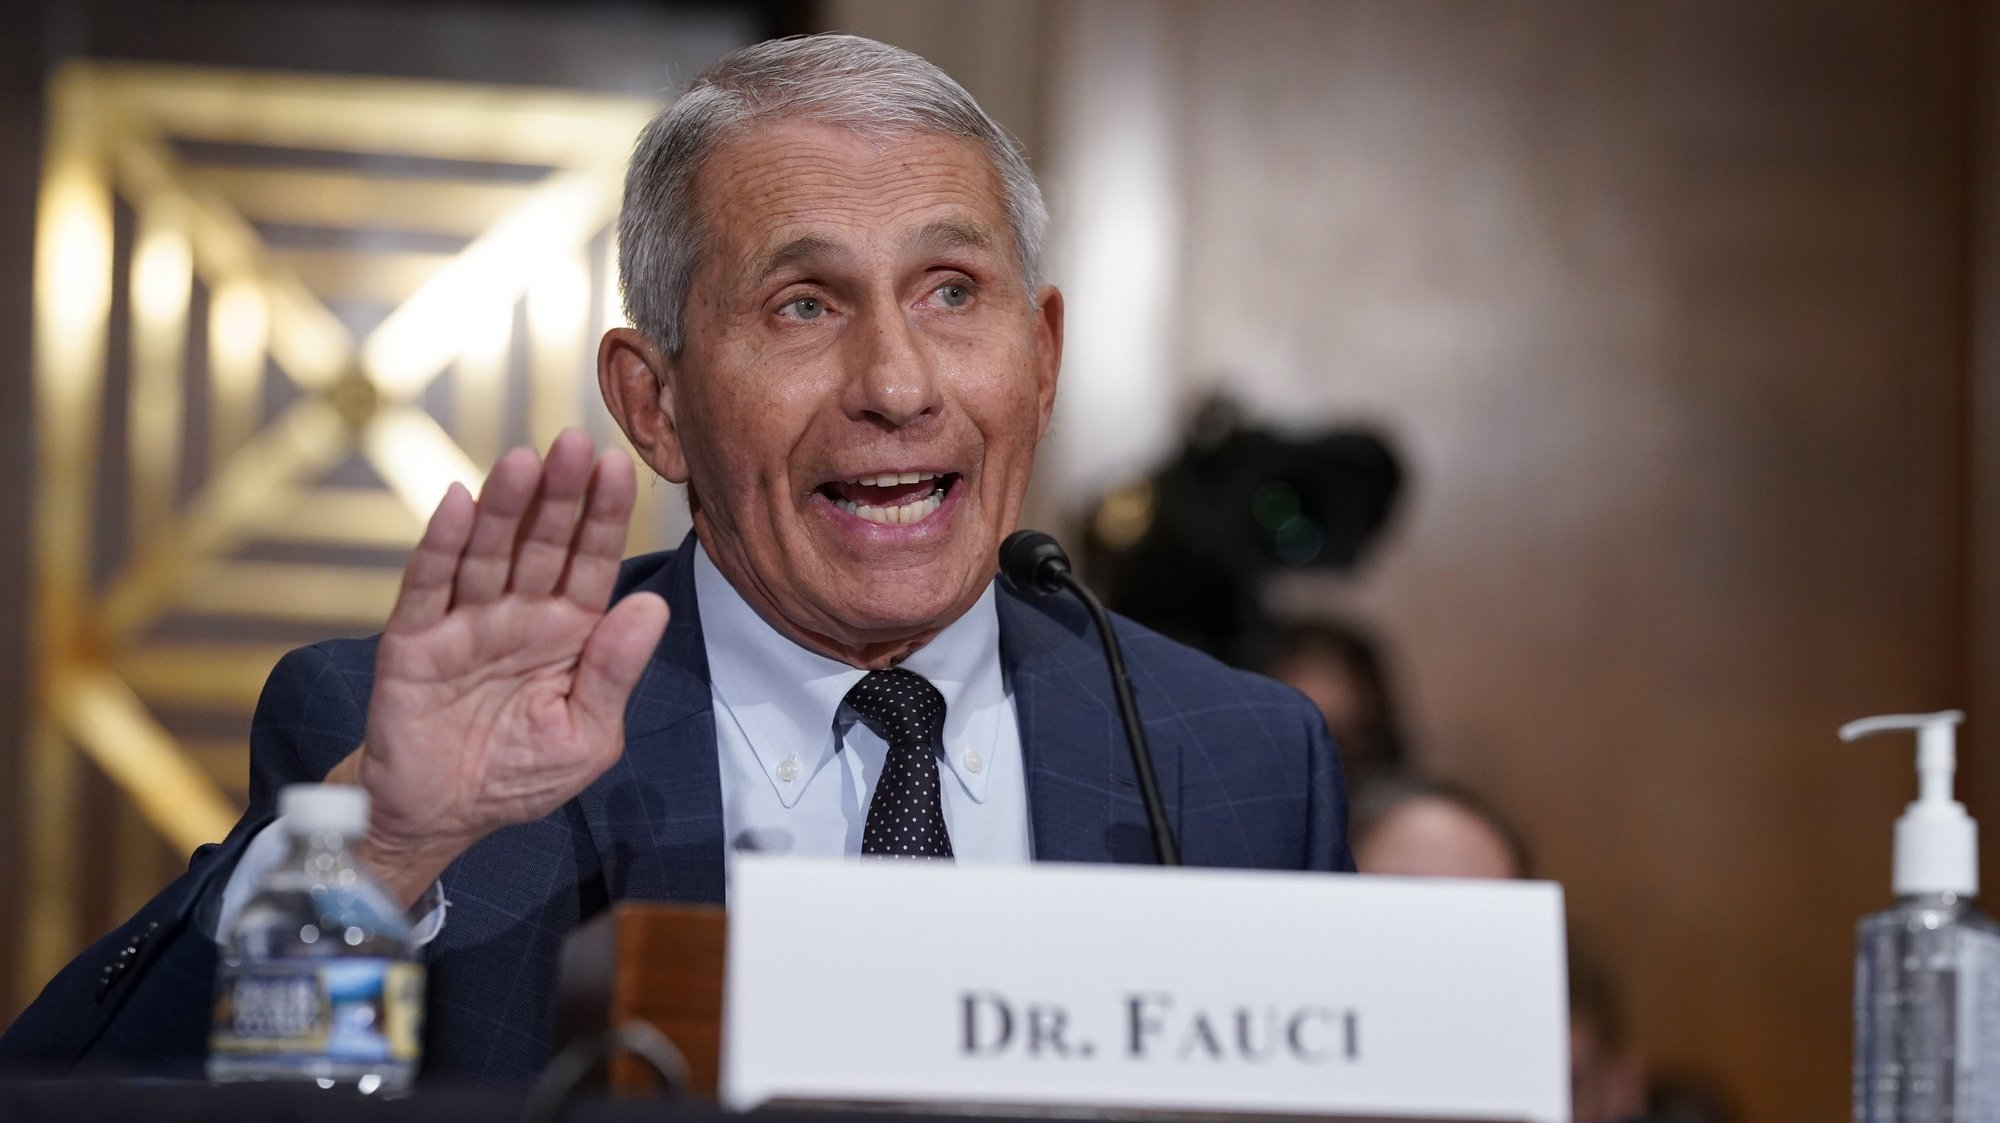 epa09355425 Anthony Fauci, director of the U.S. National Institute of Allergy and Infectious Diseases (NIAID) and the chief medical advisor to the president, during a Senate Health, Education, Labor, and Pensions Committee hearing in Washington, DC, USA, 20 July 2021.  EPA/J. Scott Applewhite / POOL